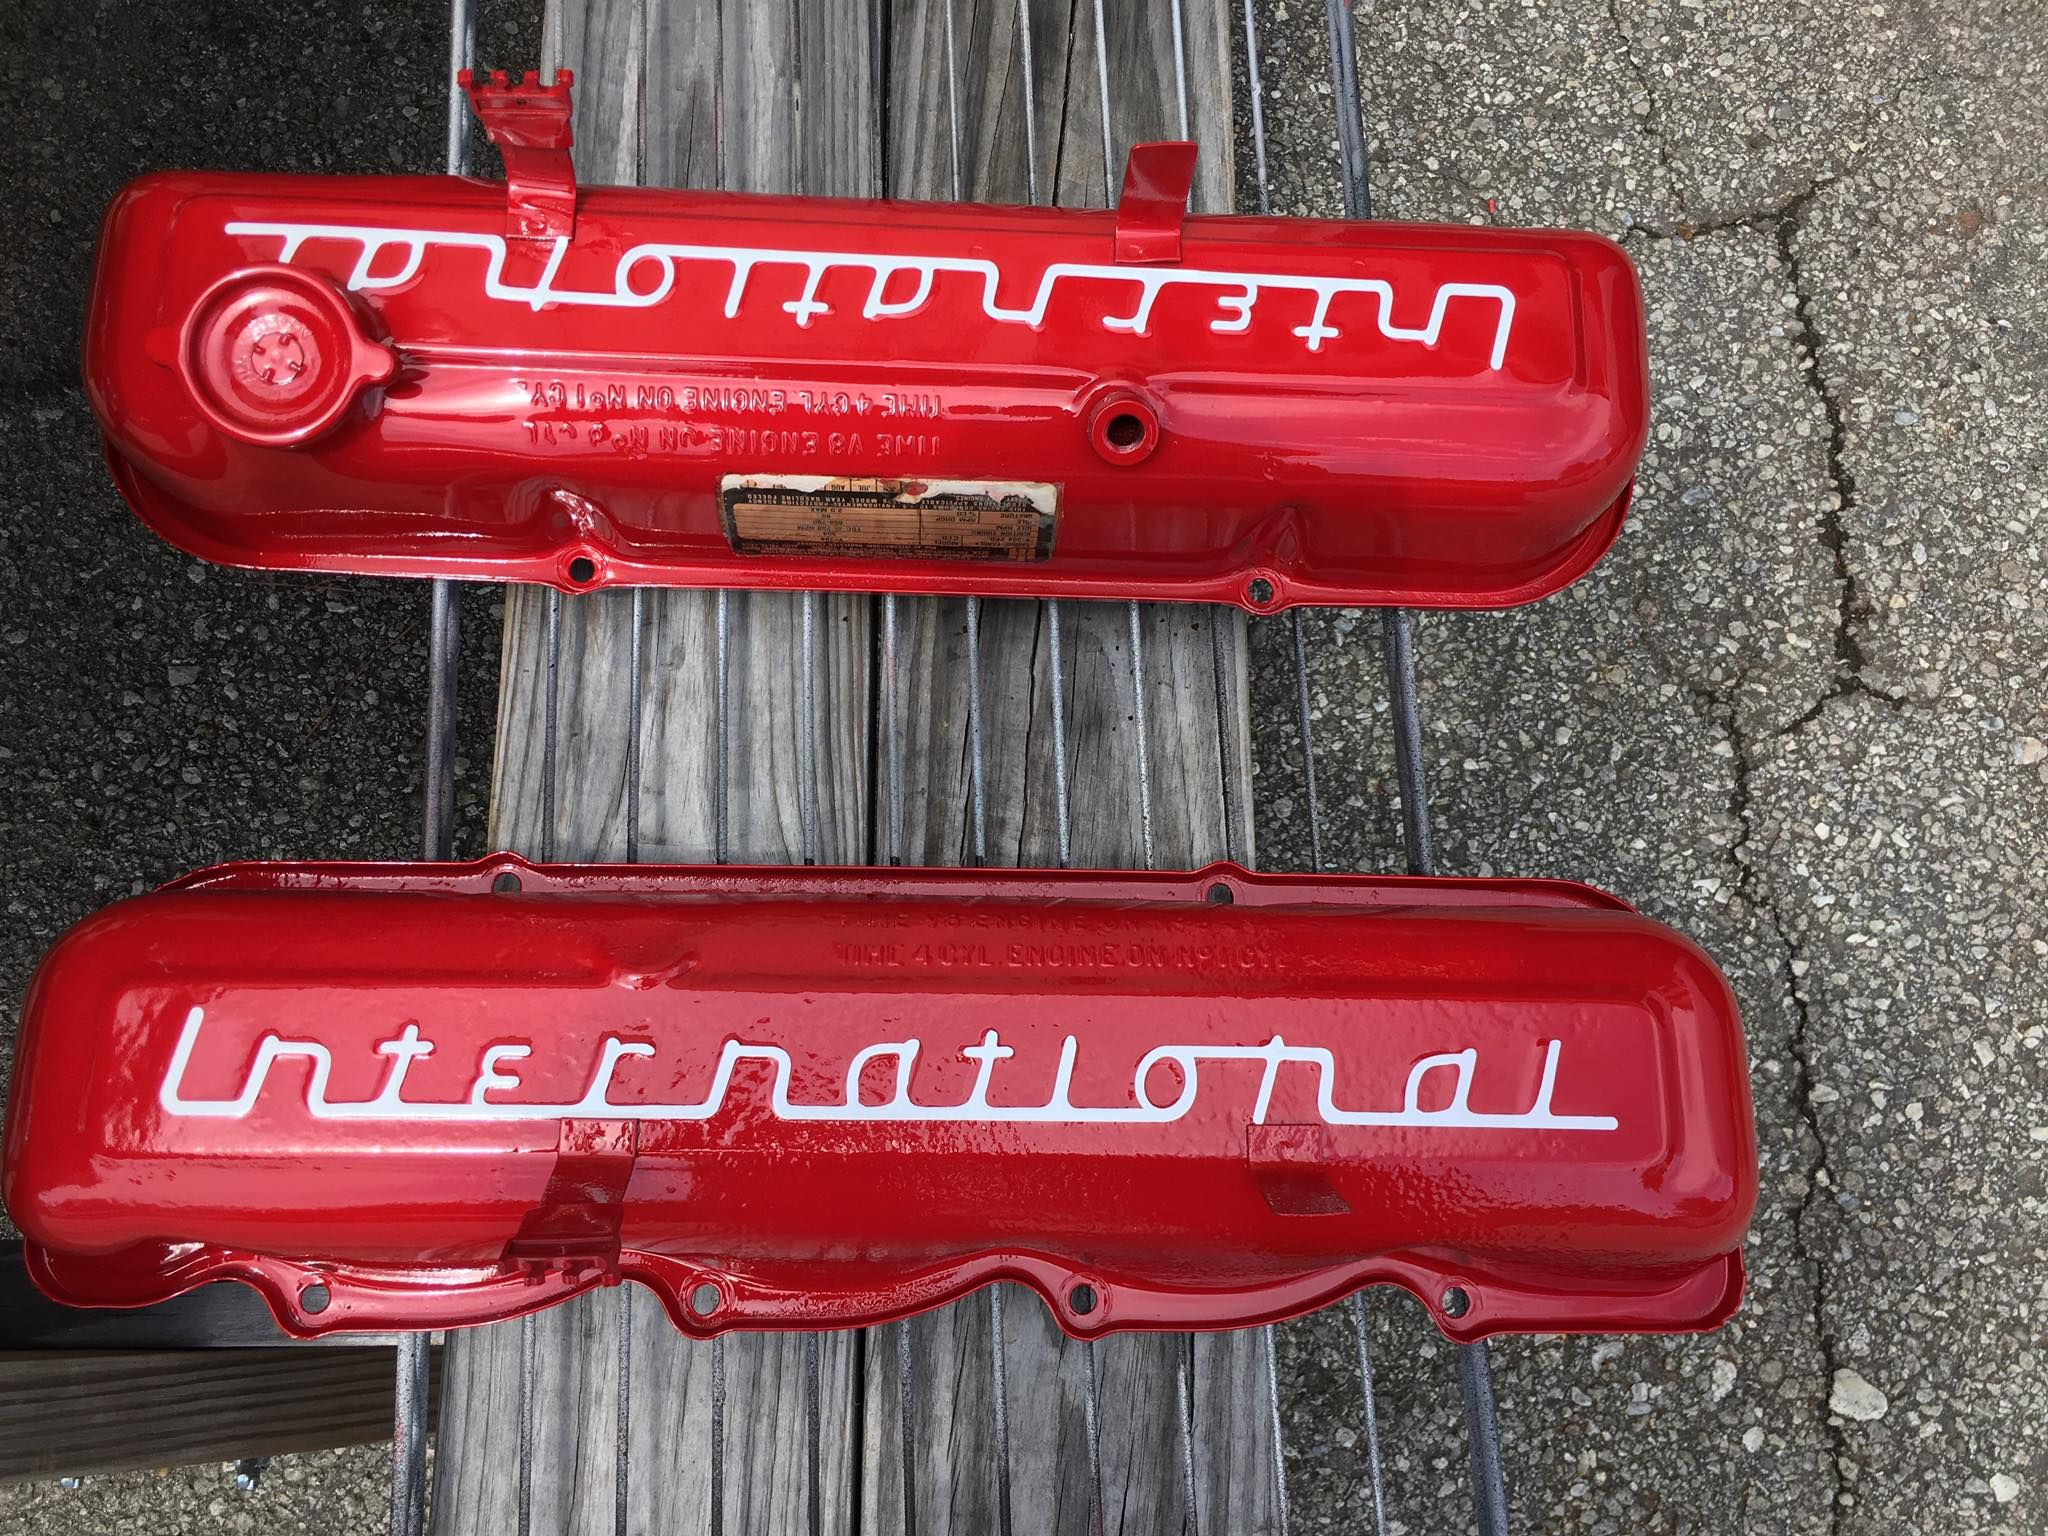 newly painted valve covers sporting the international logo